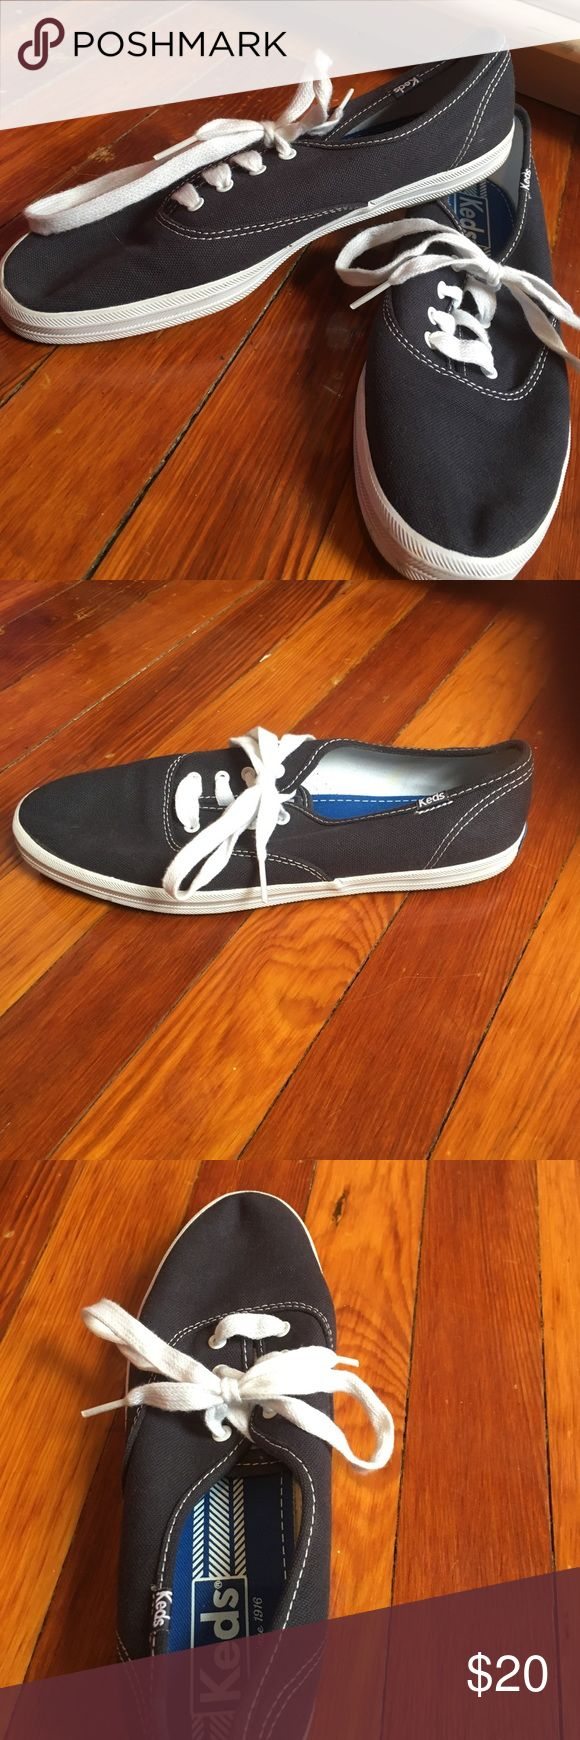 Keds Sneakers Navy Blue keds sneakers with white soles. Never worn size 8.5, no box. Shoes Sneakers